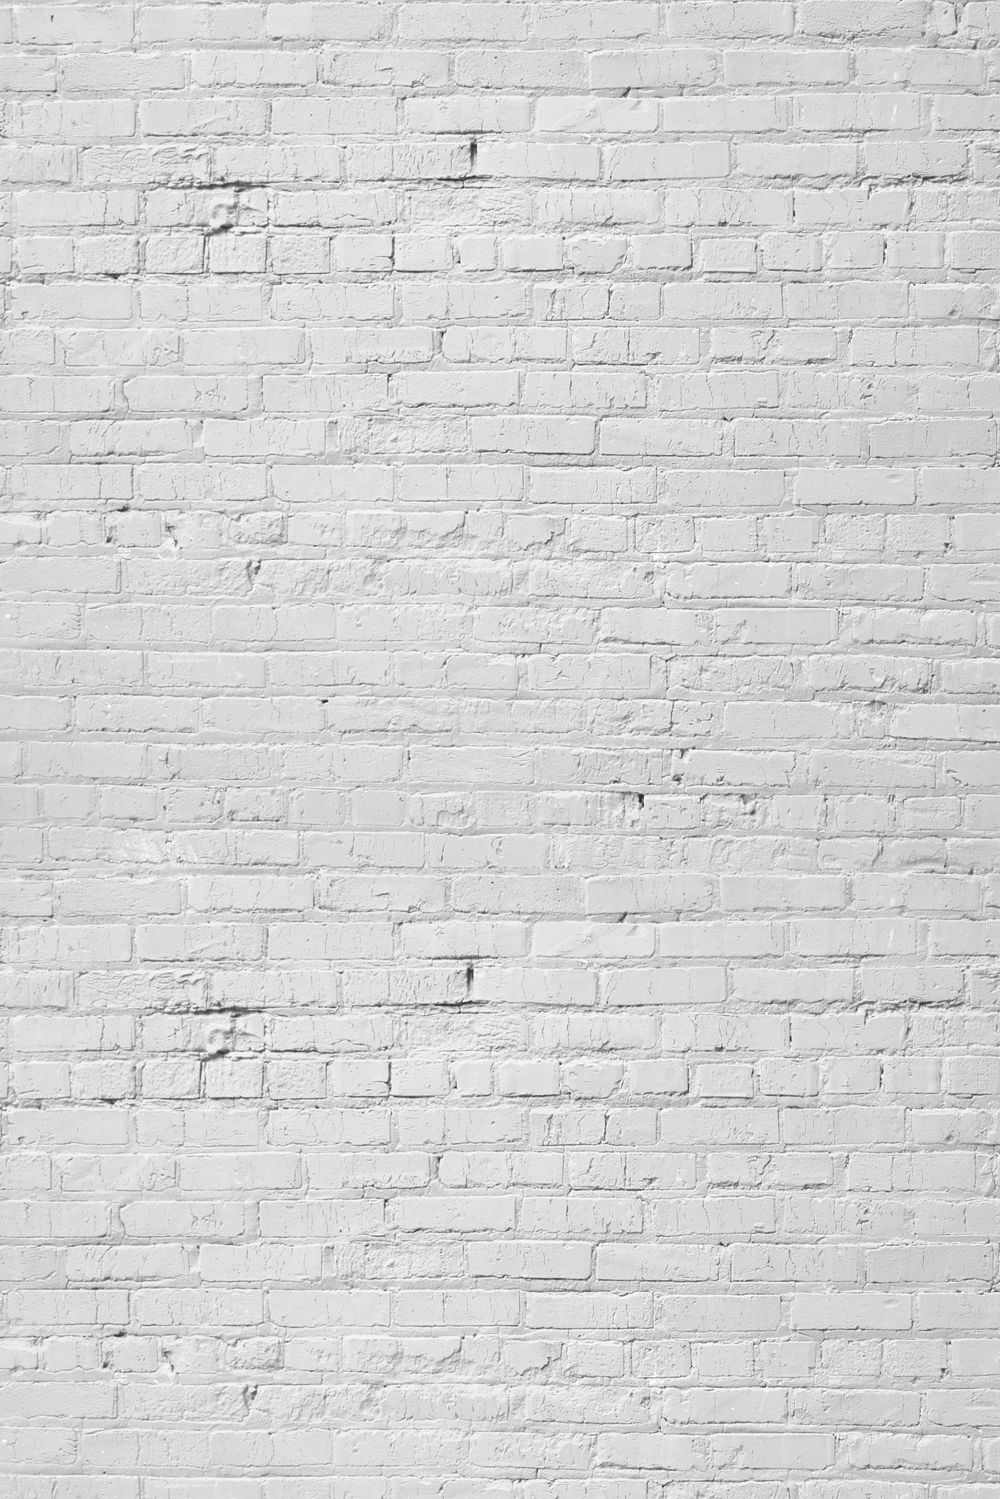 Br19 White Brick Wall 58in X 8ft Canvas White Brick White Brick Walls Brick Wall